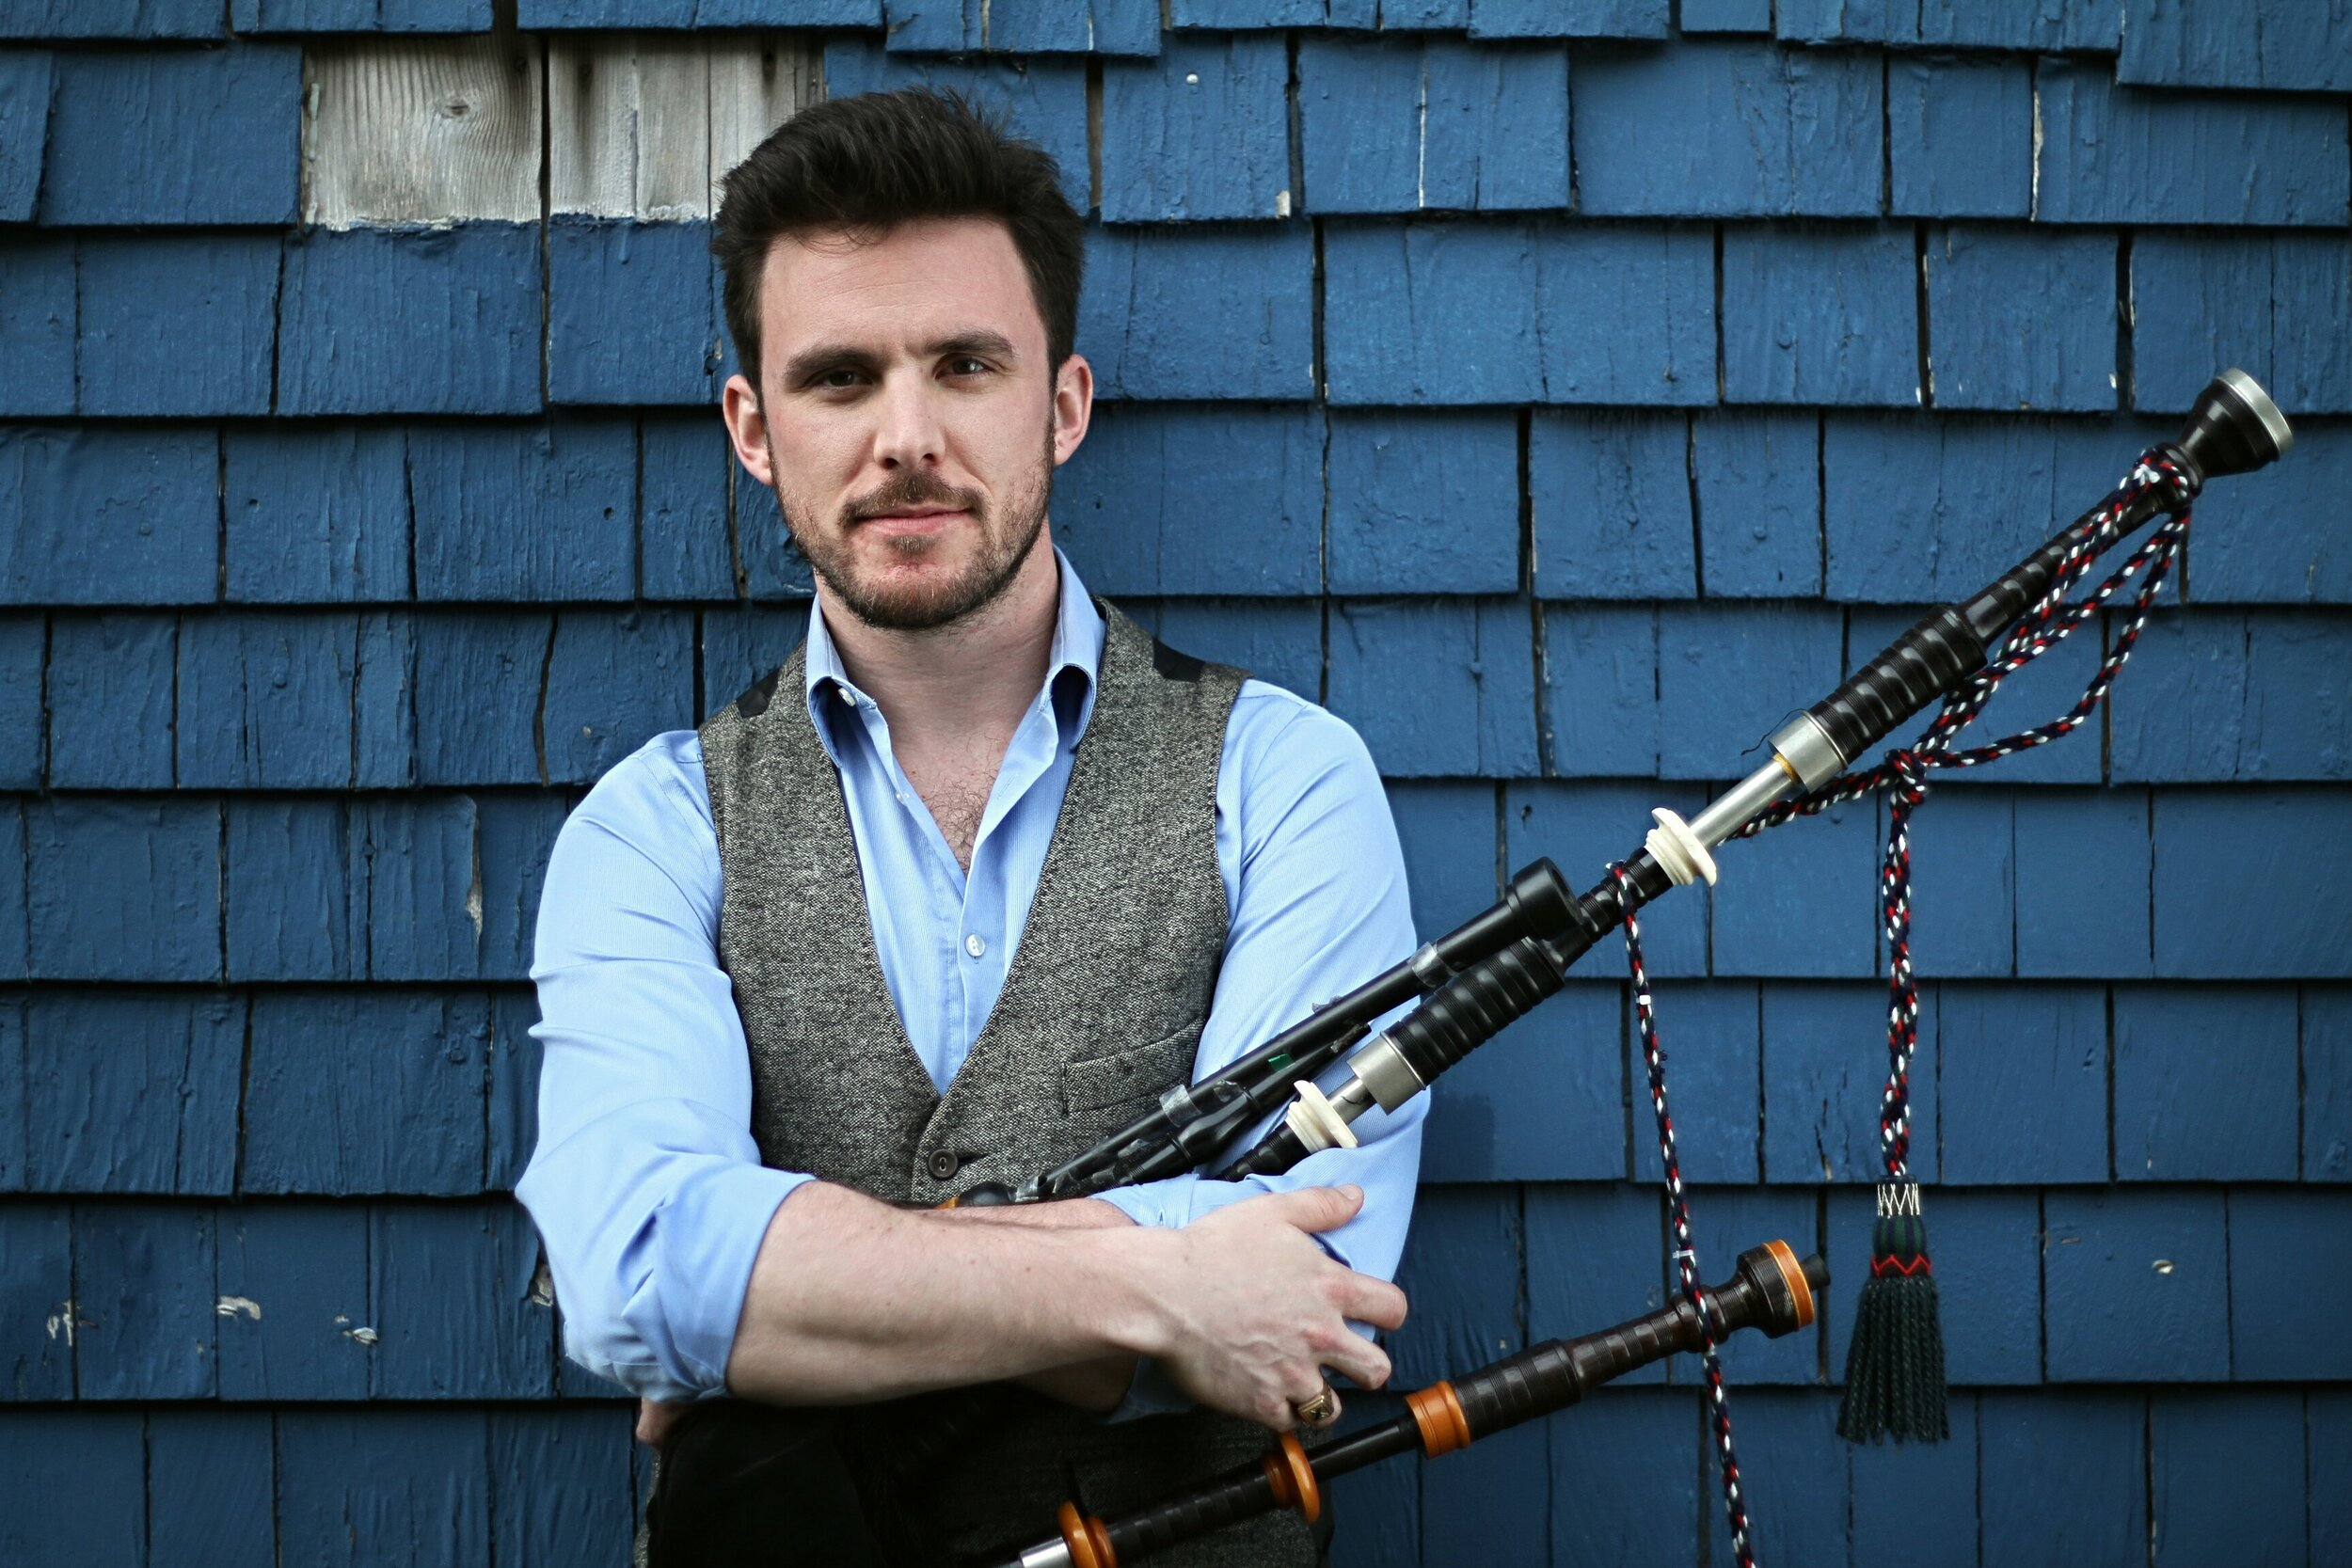 Rankin MacInnis - First known as a Cape Breton piper, Rankin's pipes have placed him on all sorts of stages. He has played on stages at the Vancouver Olympics, with DRUM! on the Parliament Hill Canada Day stage, and he's shared stages with groups like the Chieftains and the White Stripes. Most recently he has been a regular with Nova Scotia legends Jimmy Rankin and Bruce Guthro and runs the monthly Ceilidh at Obladee Wine Bar. When not piping, he's singing and dancing, most recently putting out an album (House Party) with the group Party Boots.